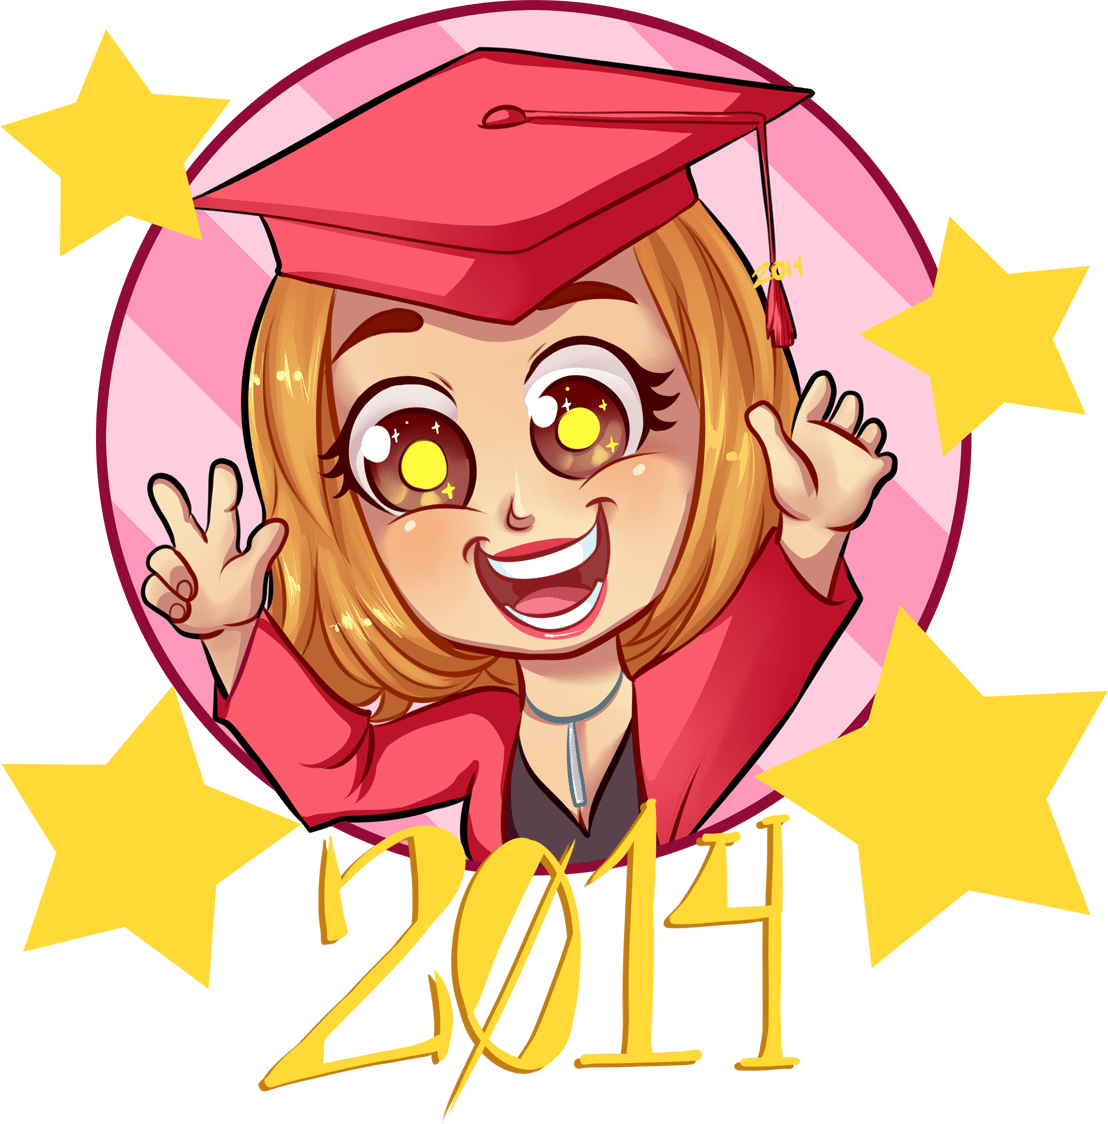 Kaitlyn the Grad by Melanie Duquesne